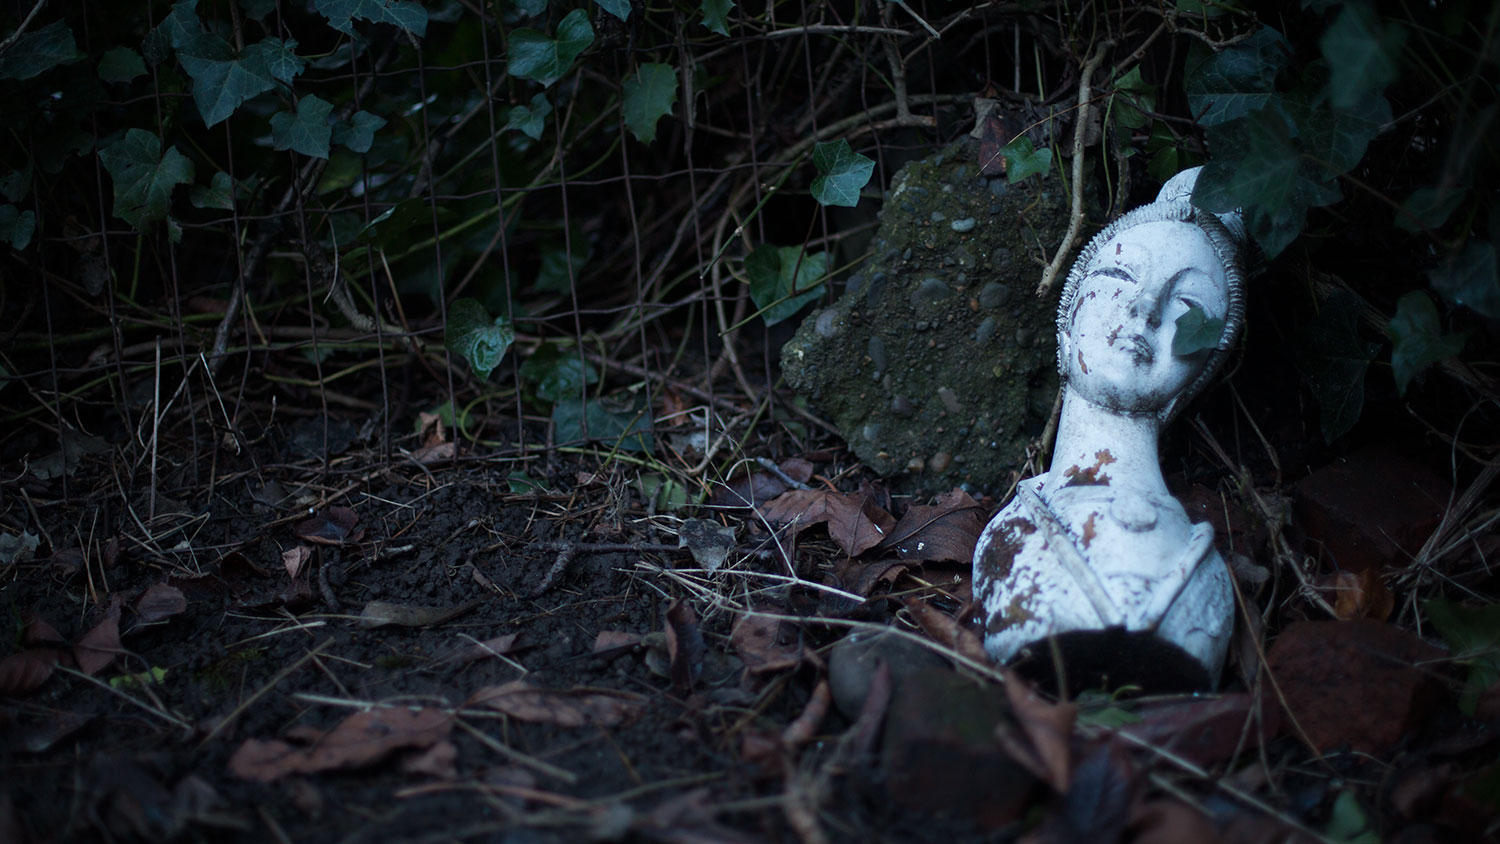 An inexplicable bust in the backyard.